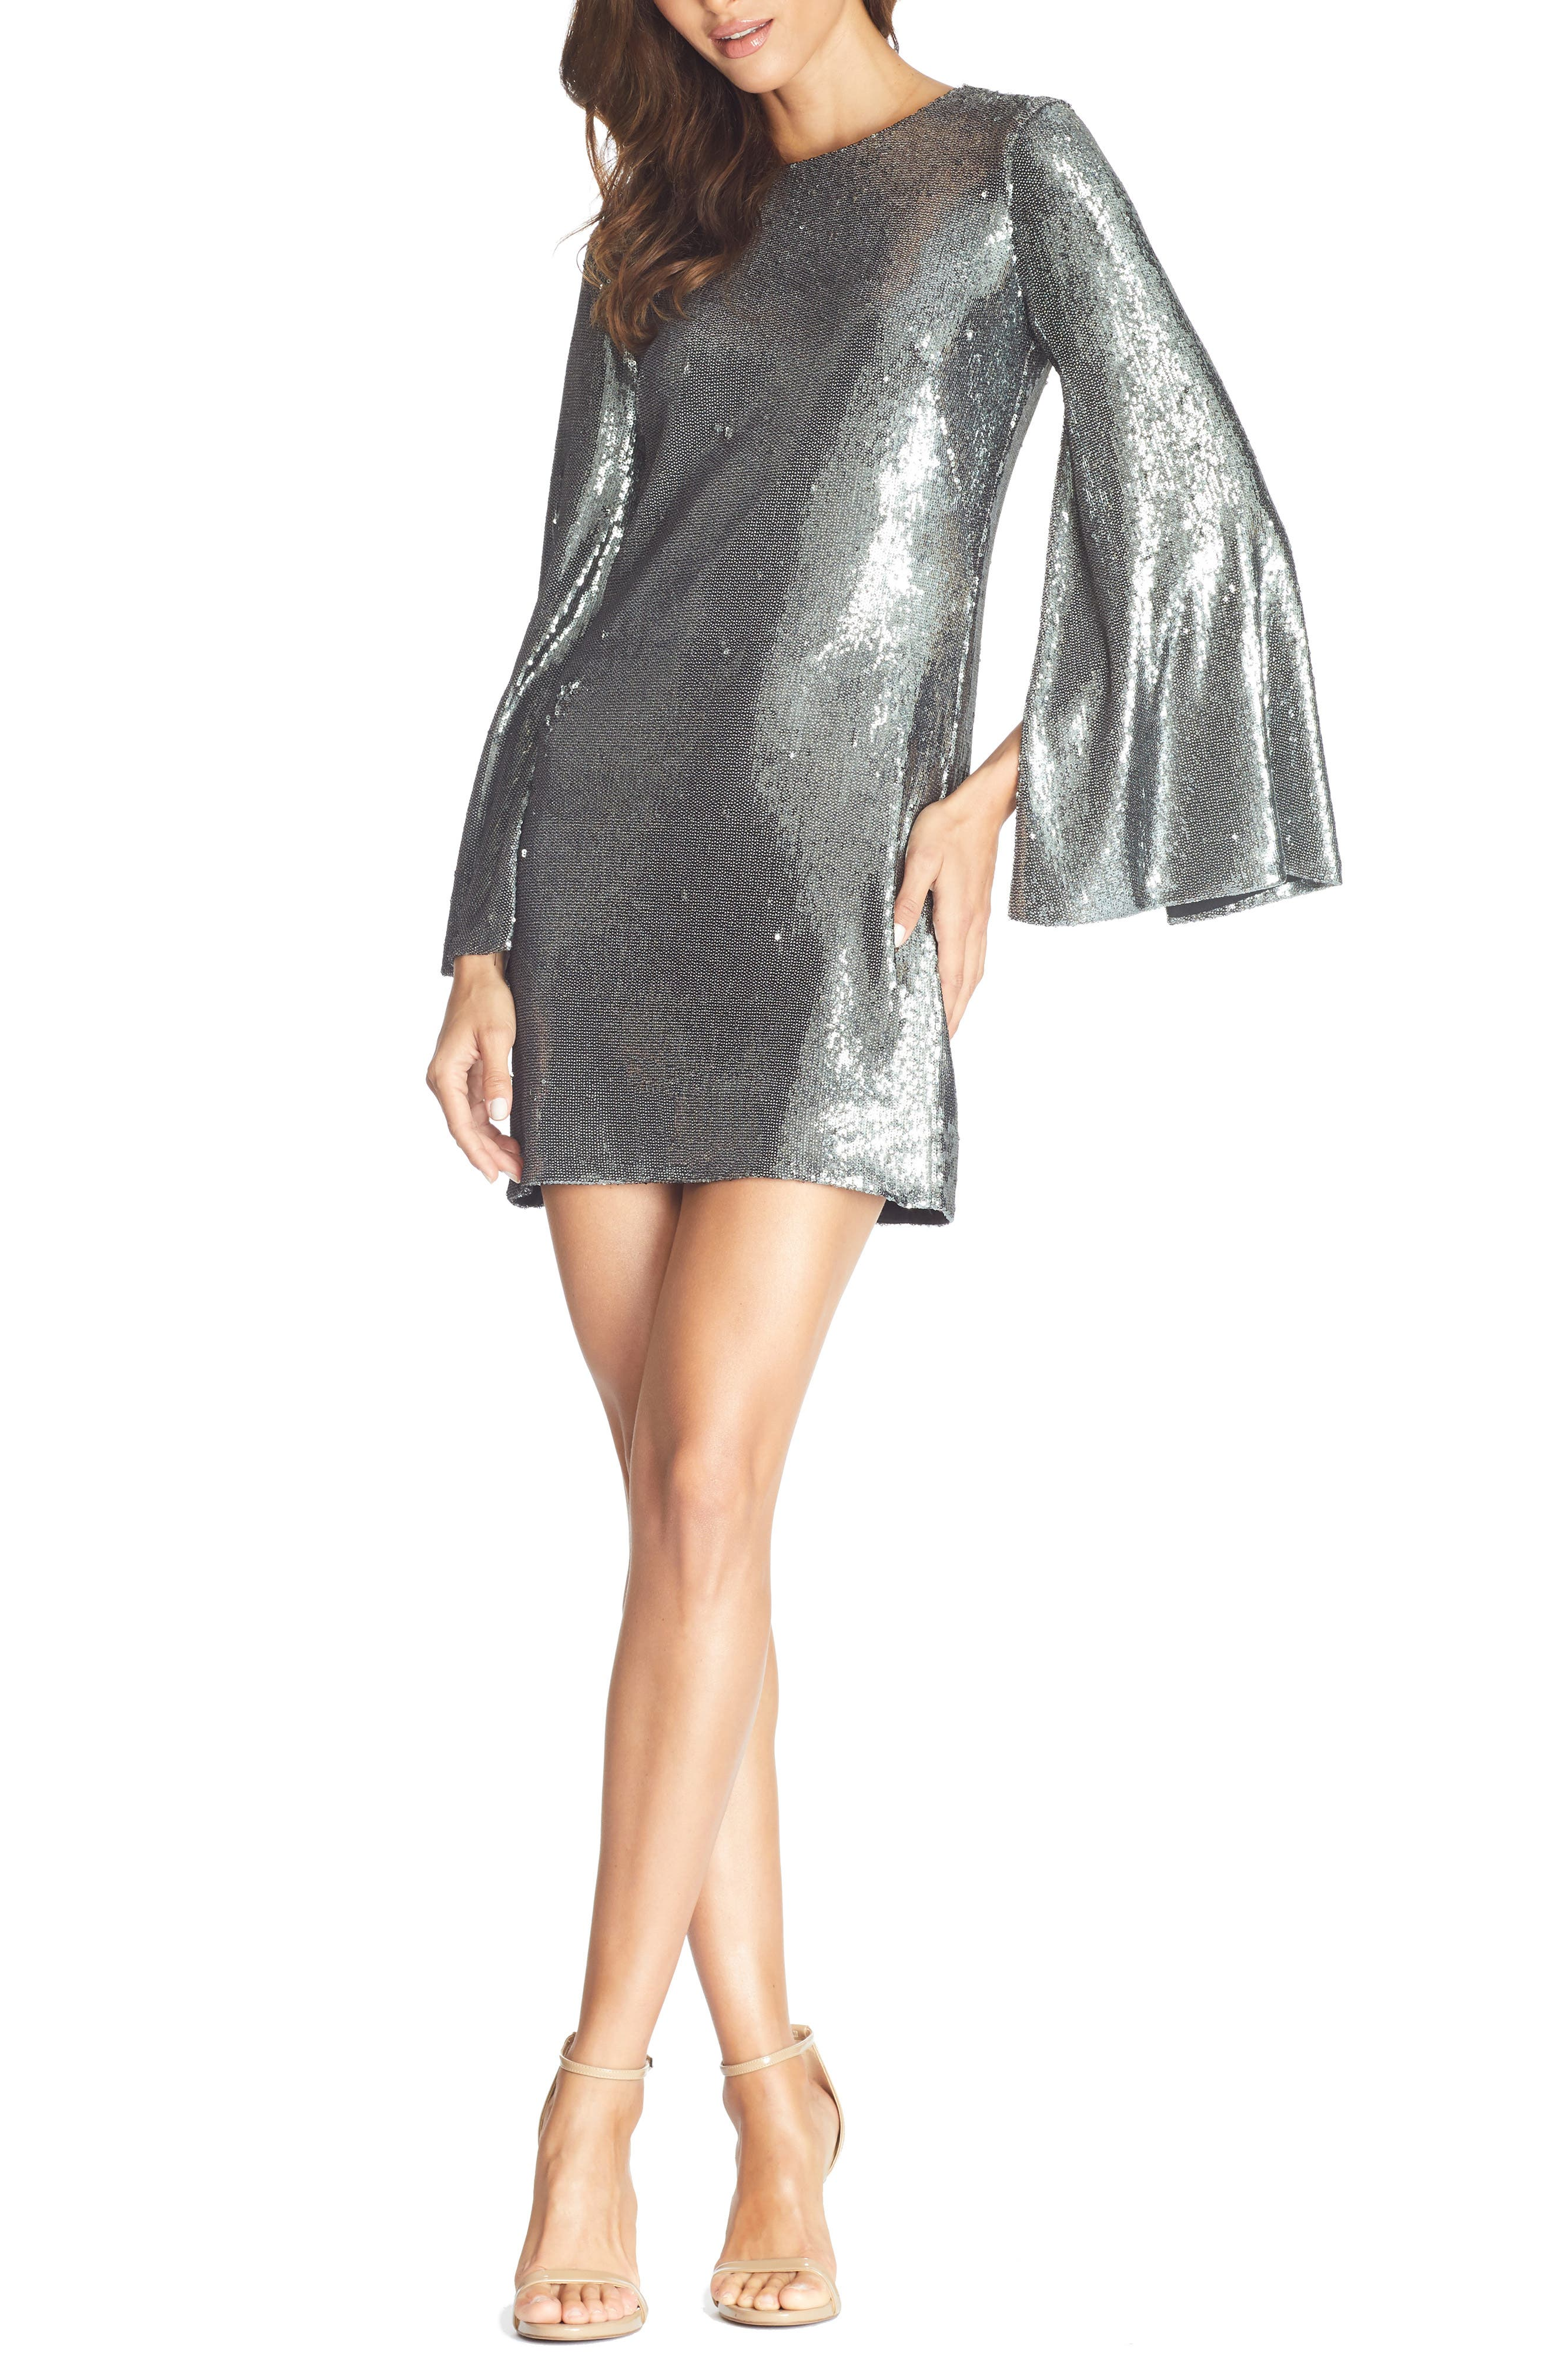 70s Prom, Formal, Evening, Party Dresses Womens Dress The Population Liza Long Cape Sleeve Sequin Minidress Size X-Small - Metallic $248.00 AT vintagedancer.com